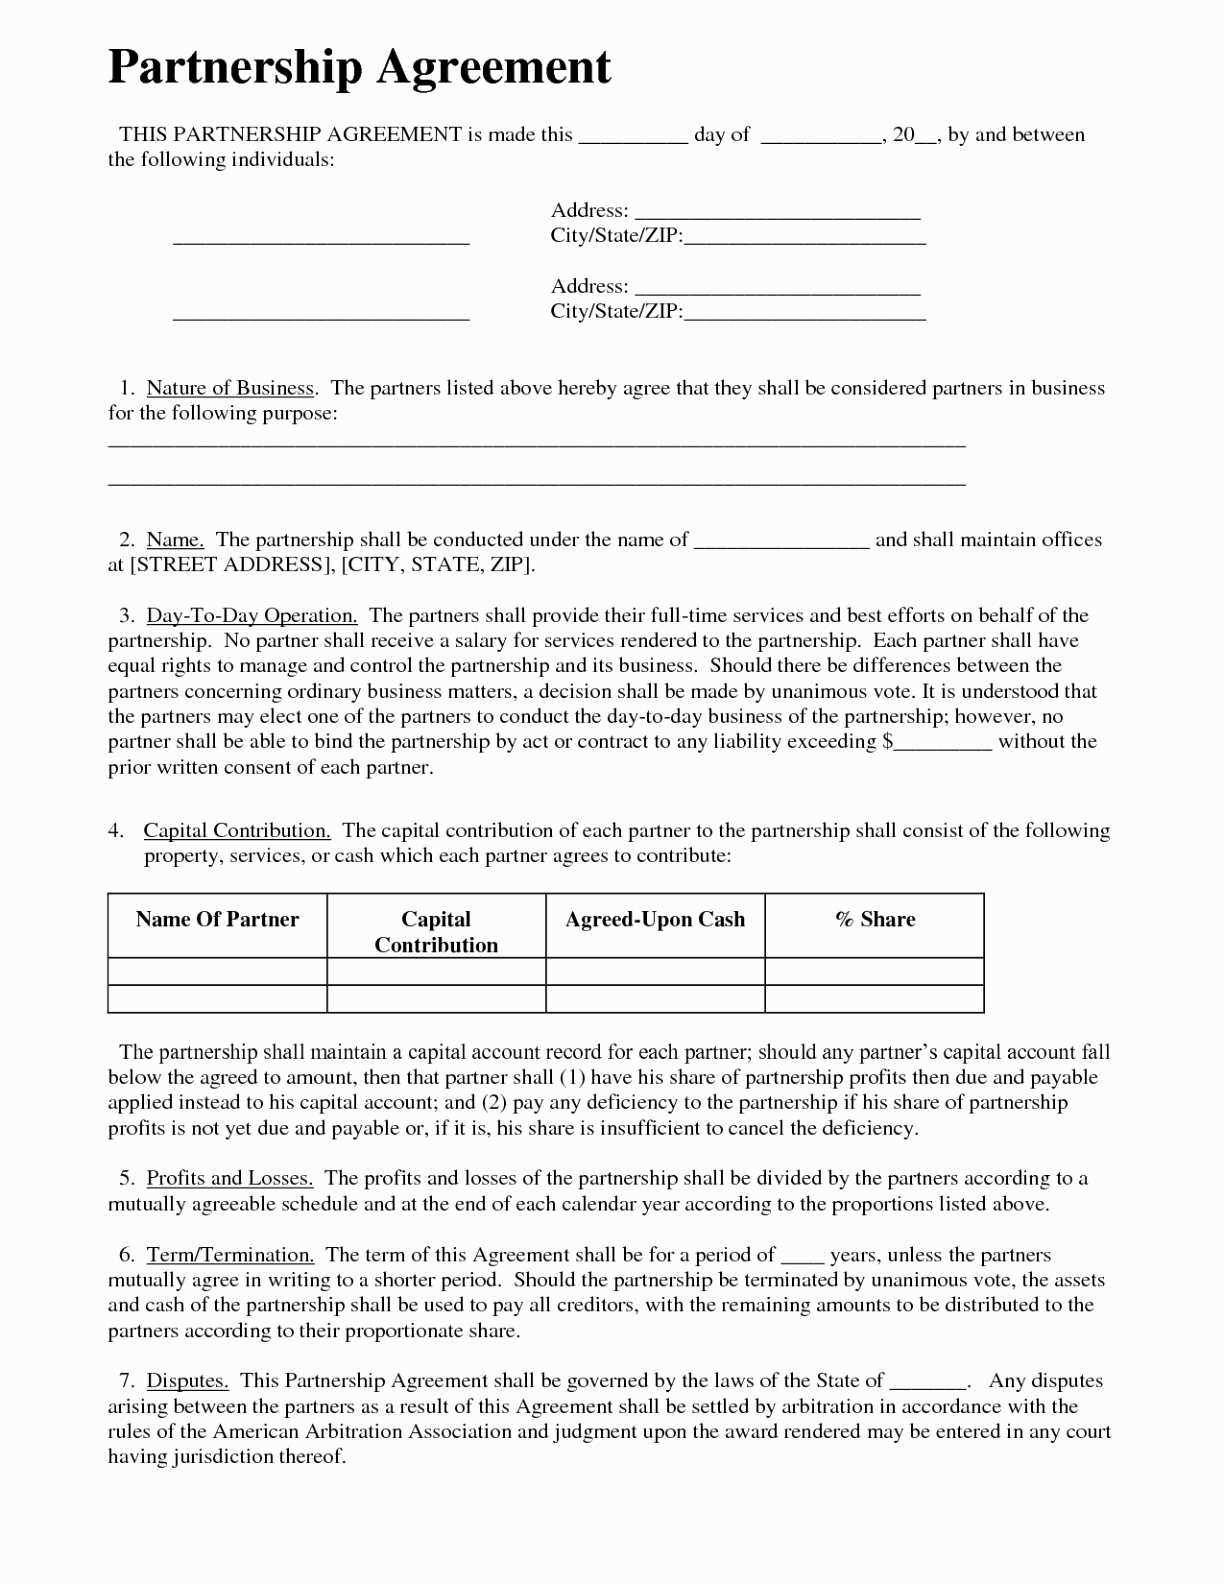 Partner Agreement Template Free